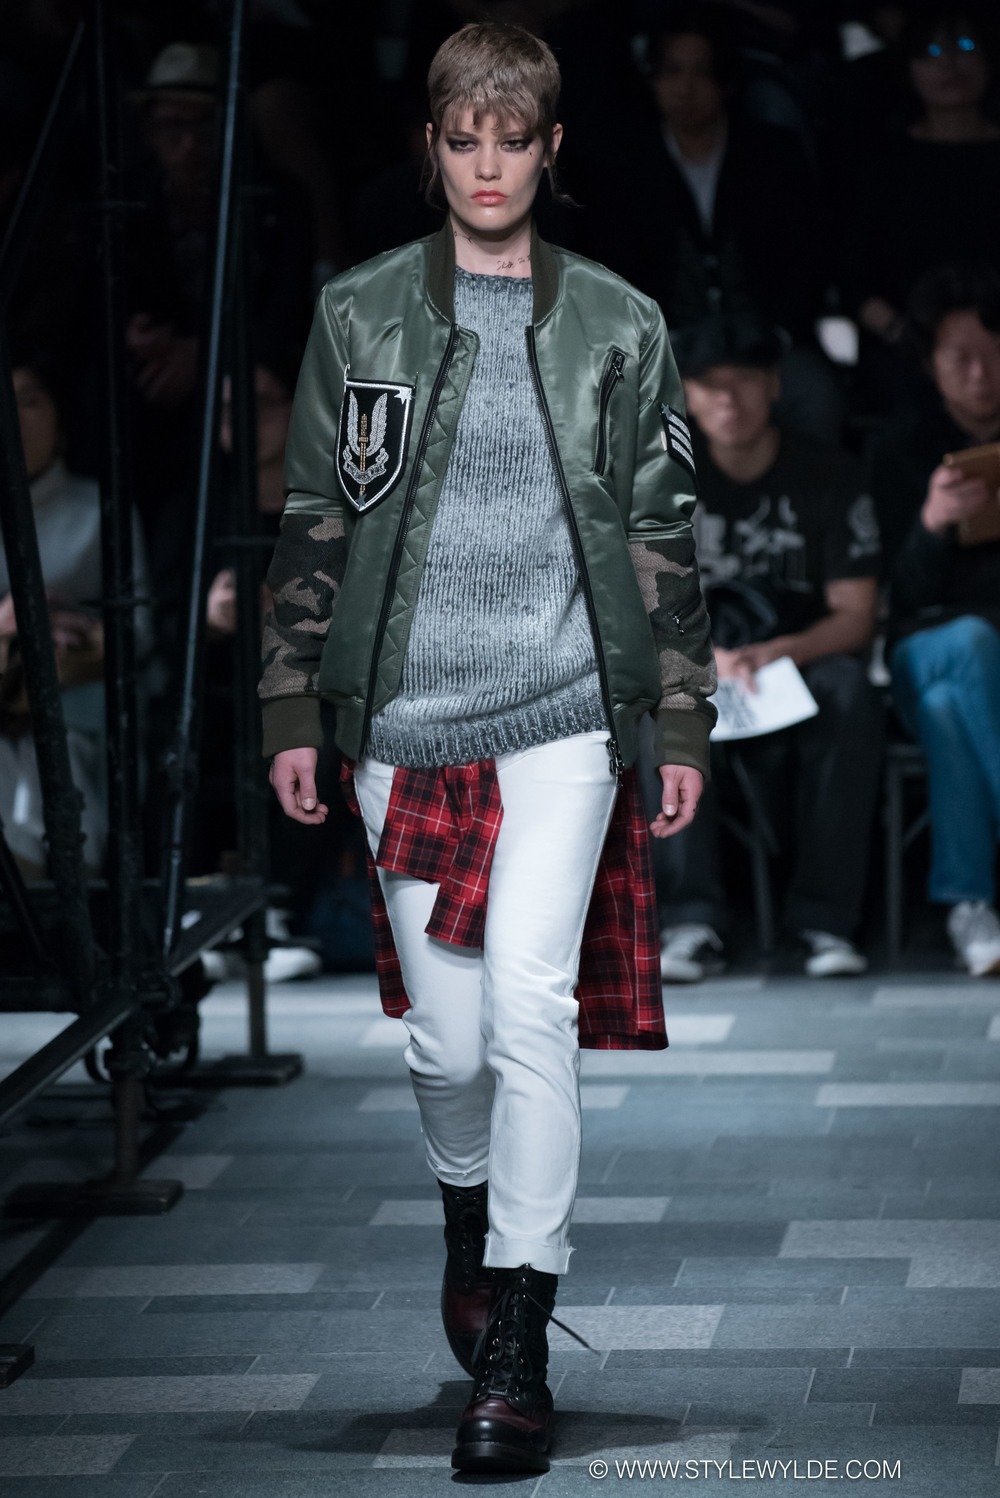 stylewylde_5351_pour_les_hommes_fw_2016-9.jpg